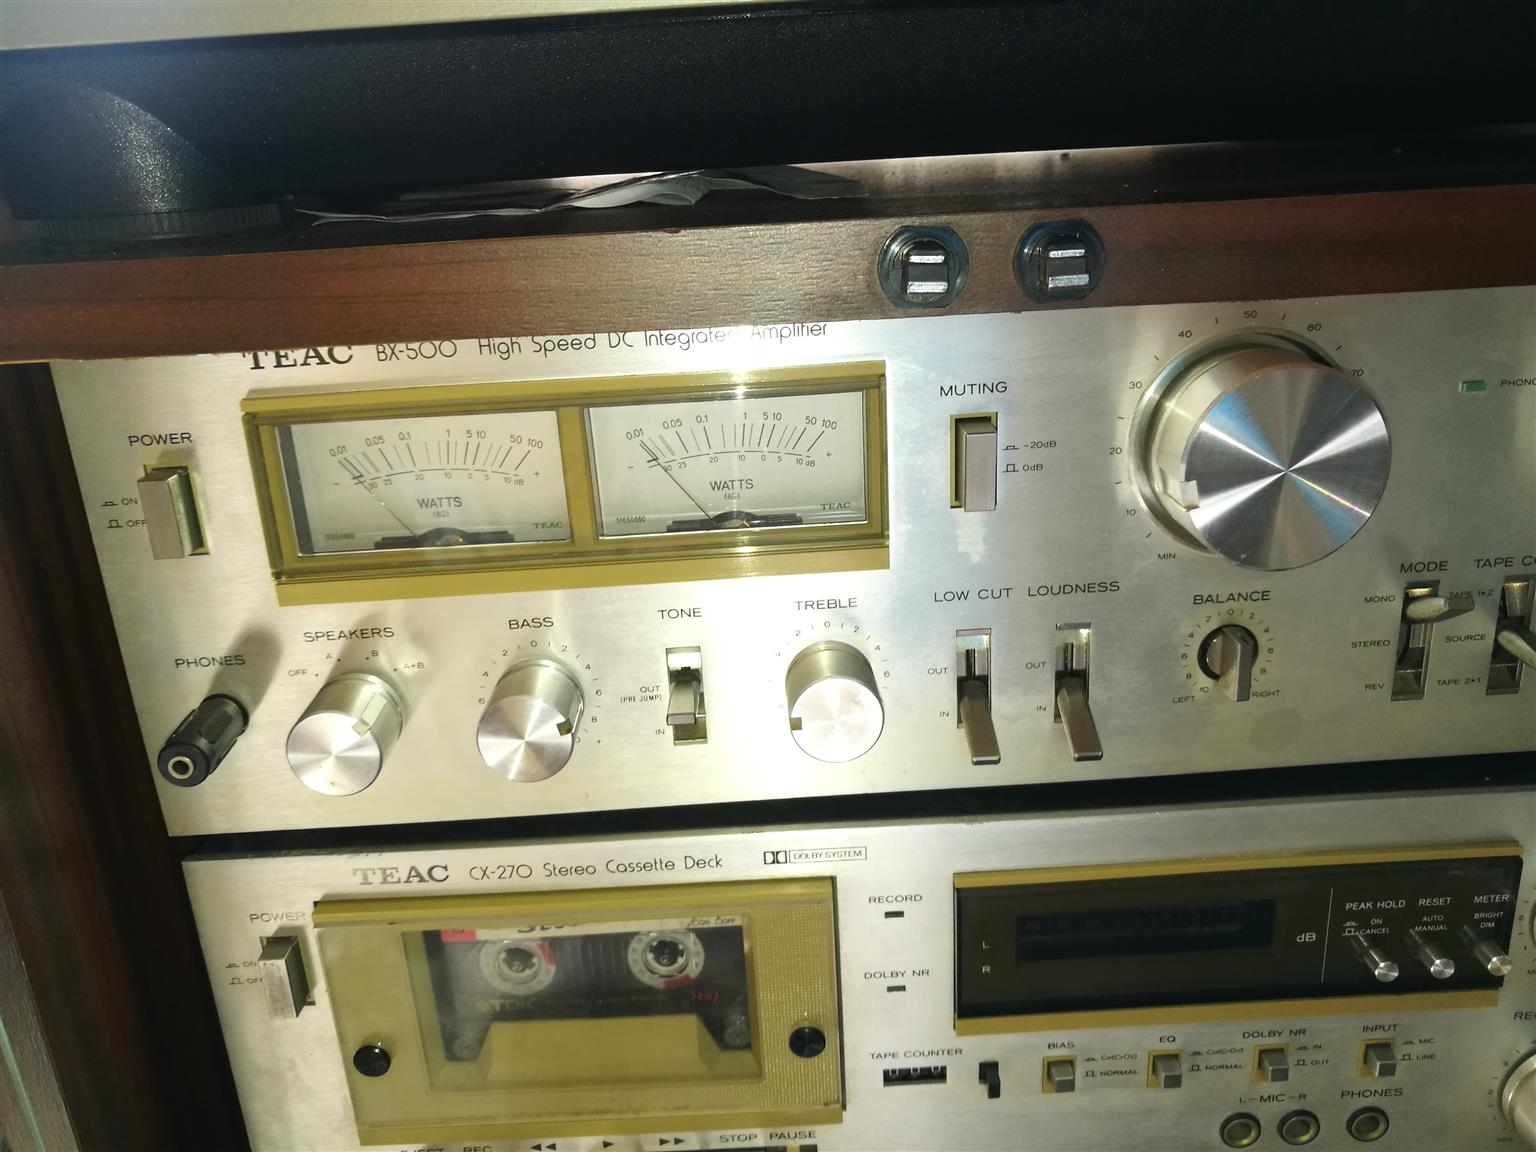 A great vintage  Teac BX - 500 Stereo High Speed DC Integrated Amplifier (1979-80) SOLD